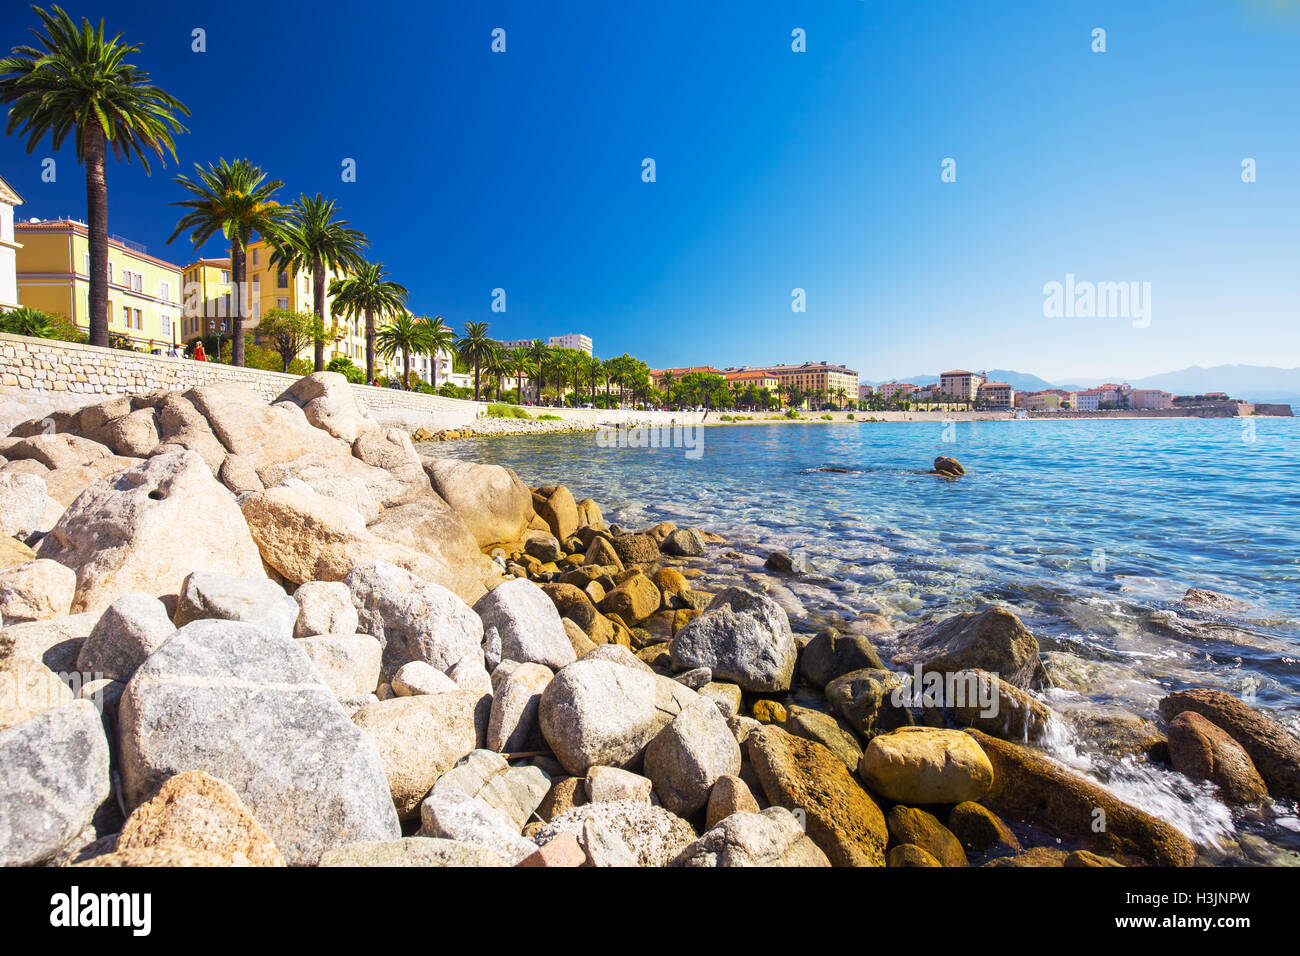 Ajaccio old city center coastal cityscape with palm trees and typical old houses, Corsica, France, Europe. Stock Photo